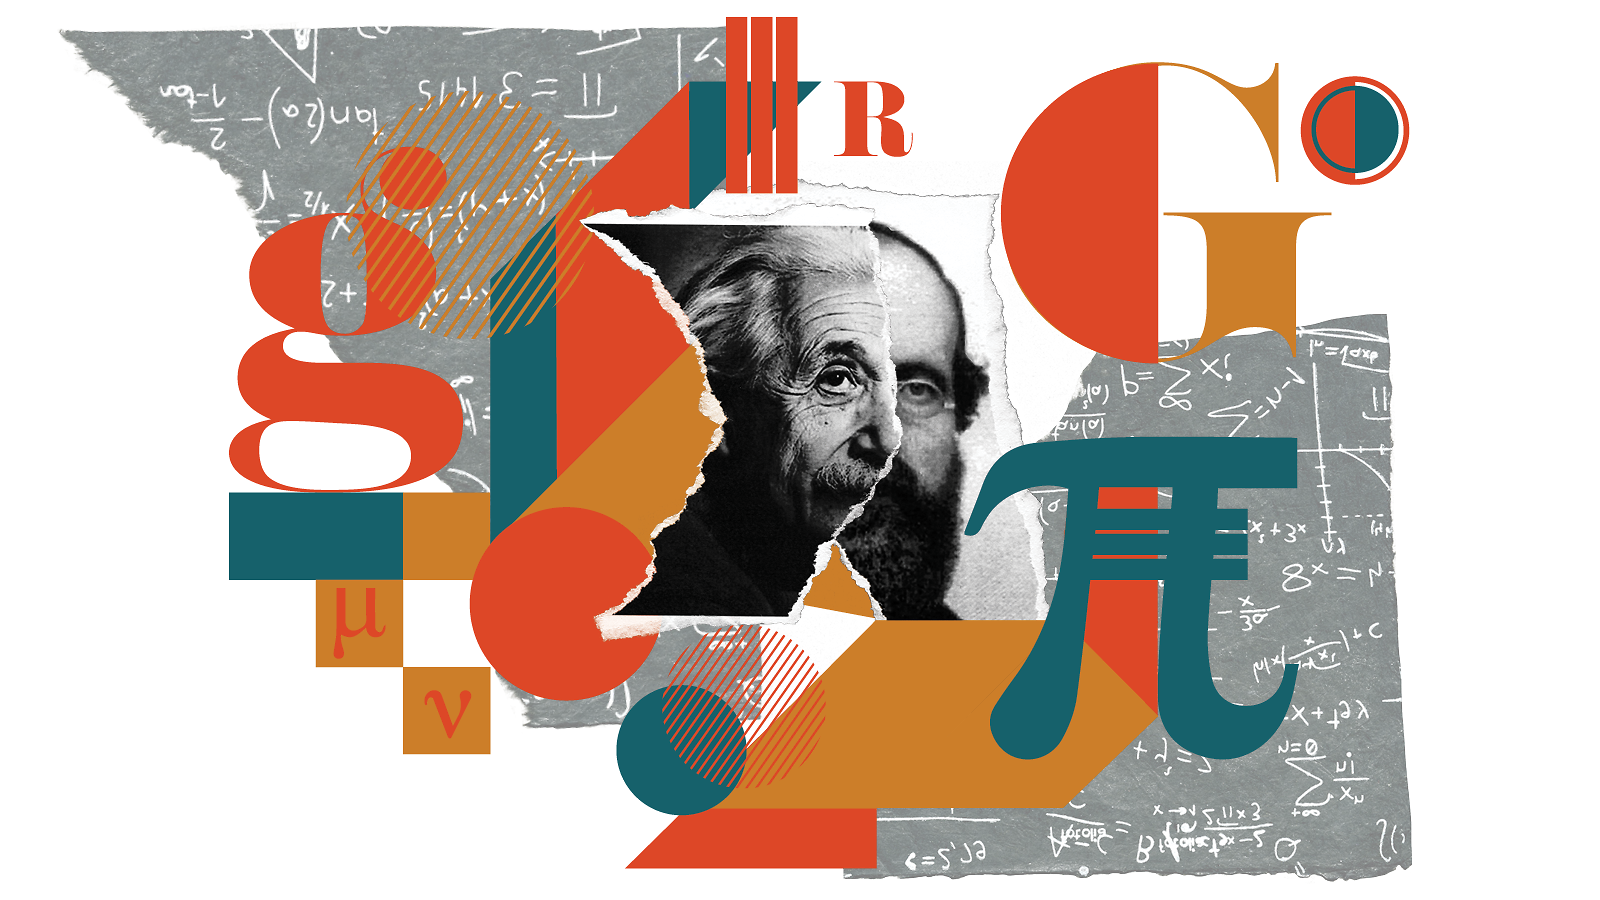 Collage Of Einstein And Reimann S Faces On Ripped Paper In